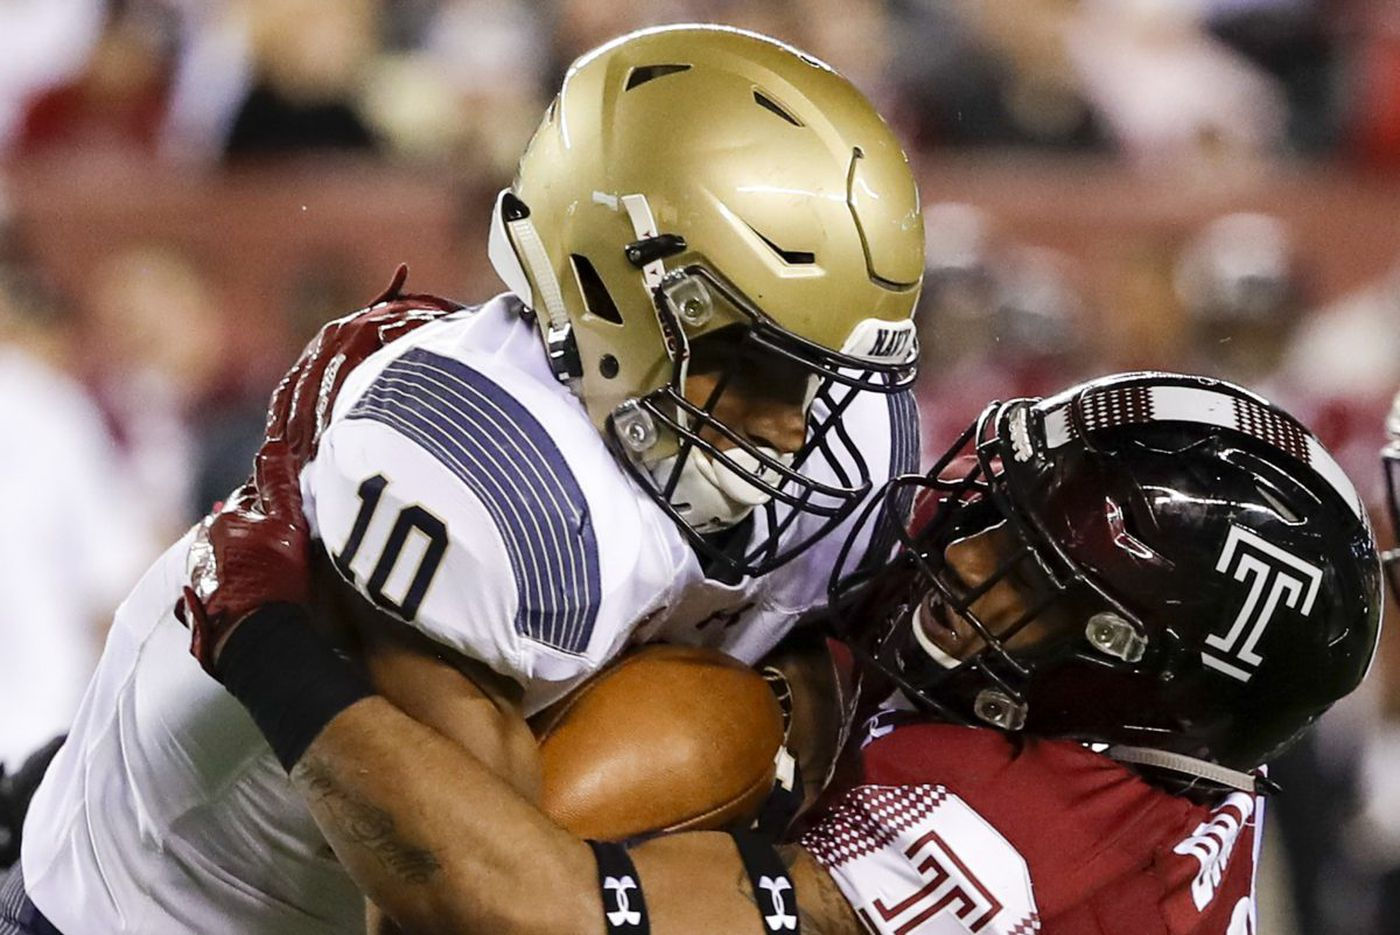 Temple players assess Army and Navy after facing both